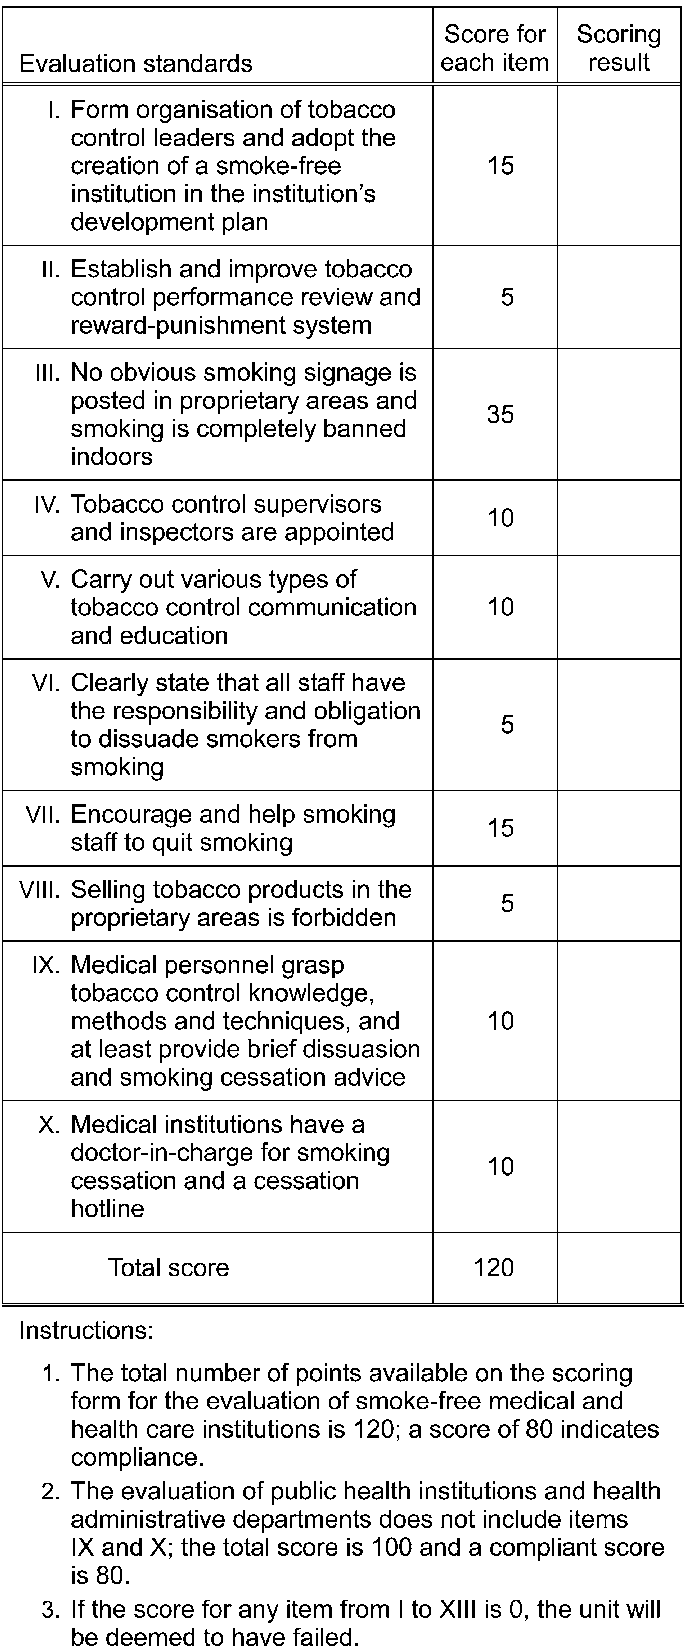 medium resolution of figure scoring form based on evaluation standards for smoke free medical and health care institutions adapted from ministry of health state administration